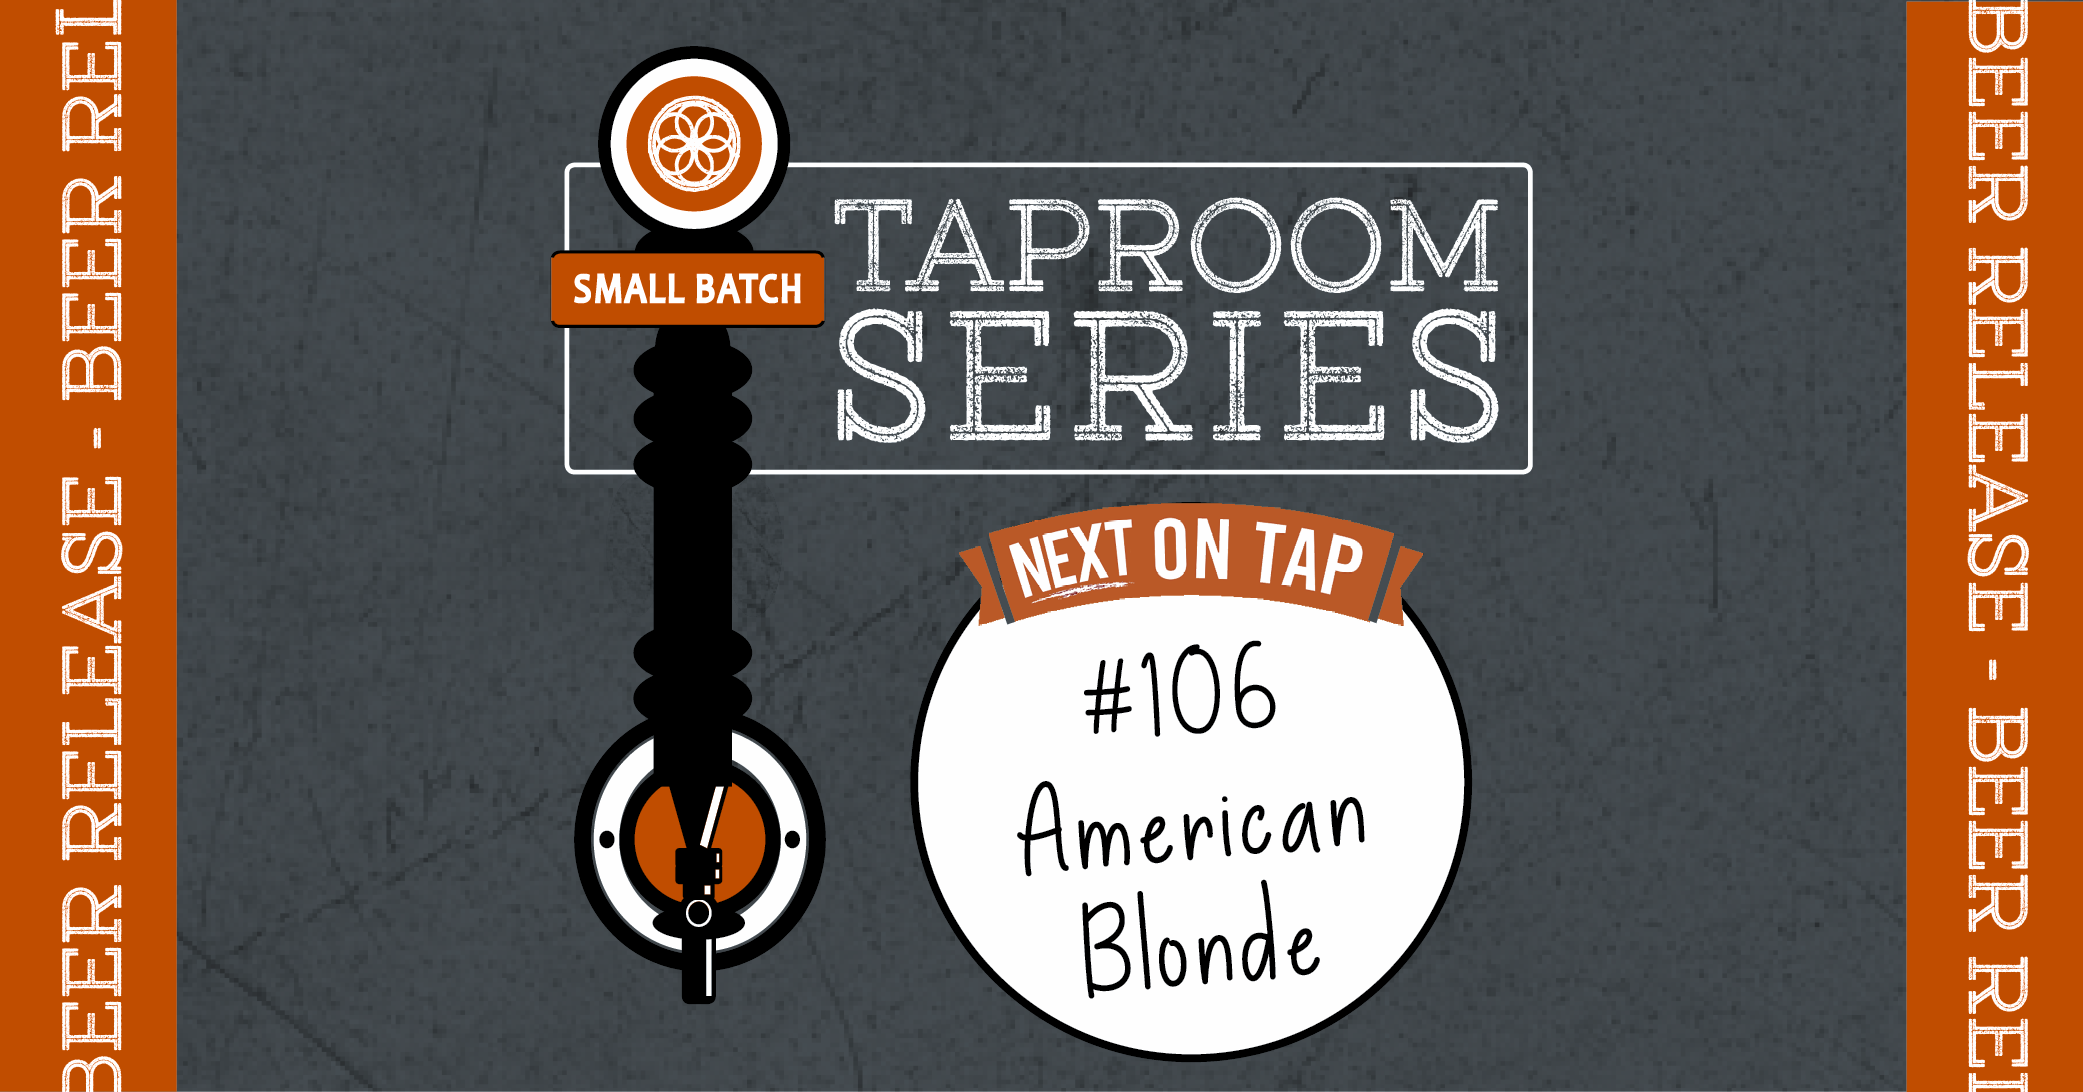 Taproom Series - 106 American Blonde_FB Event Cover.png